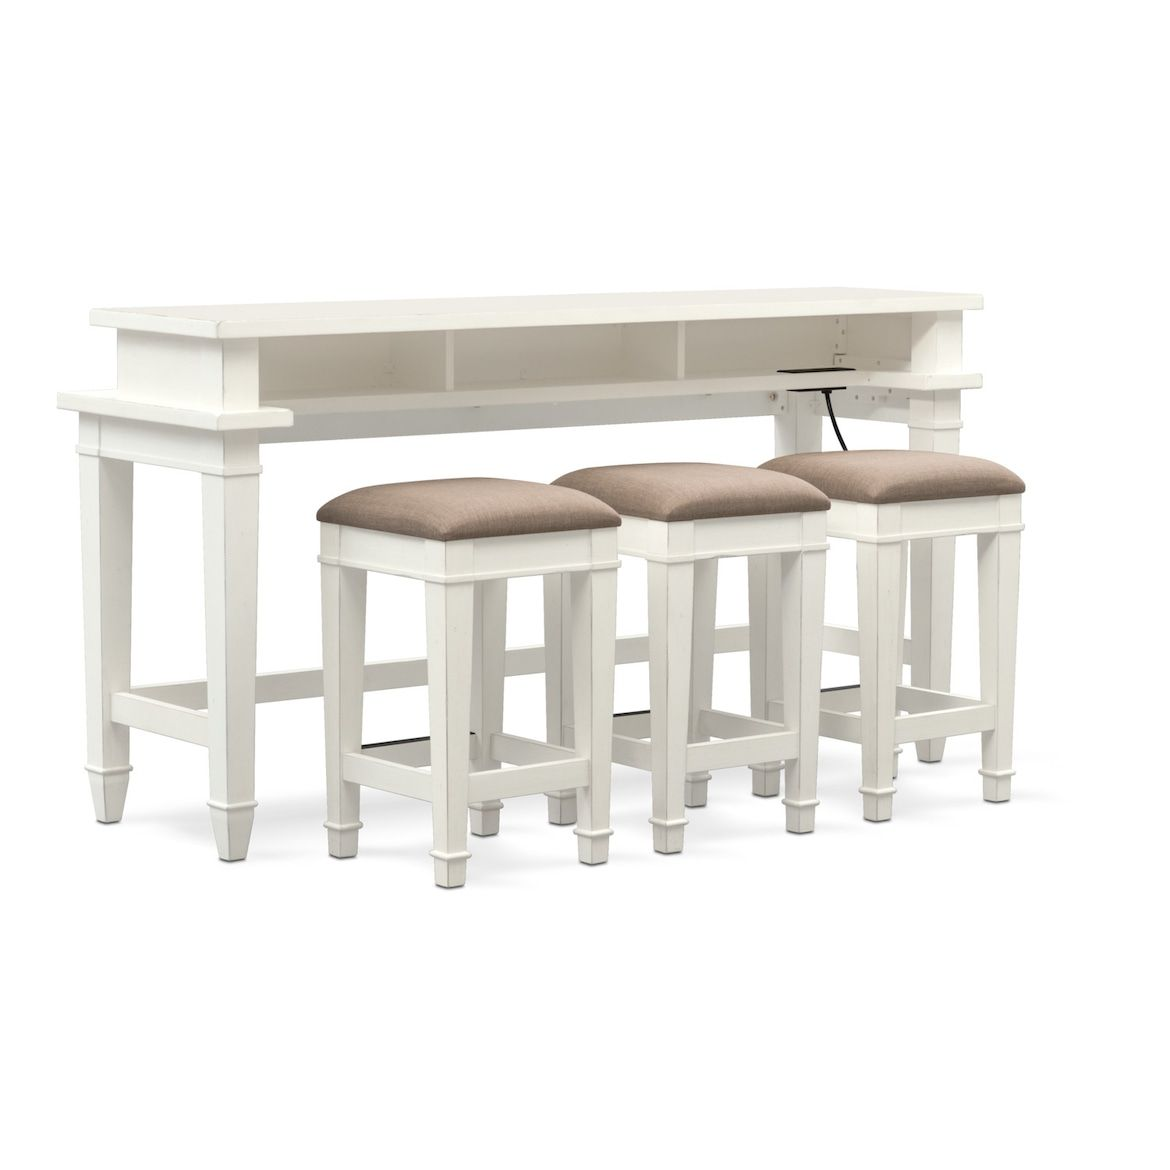 Waverly Sofa Table And 3 Stools Living Room Stools Rattan Furniture Living Room Sofa Table